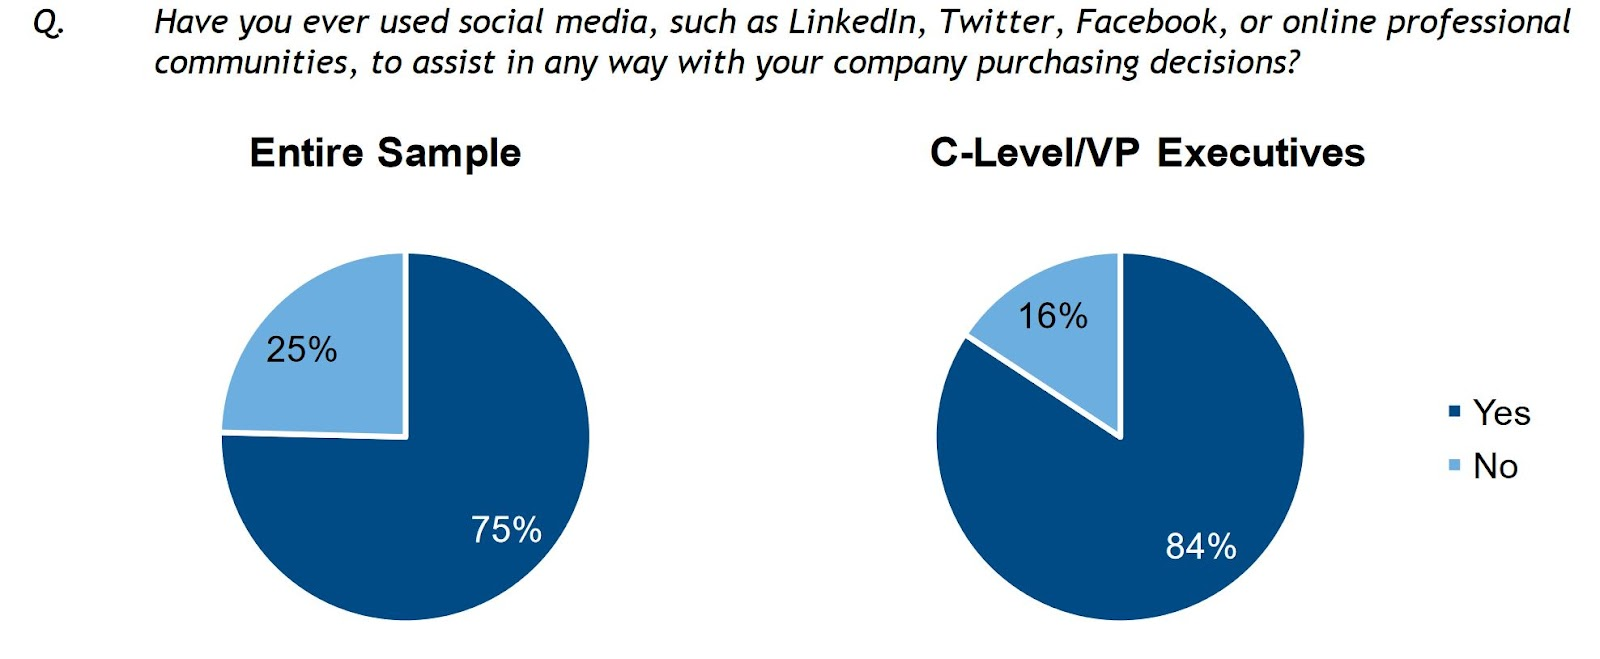 C-suites use social media to make purchasing decisions.